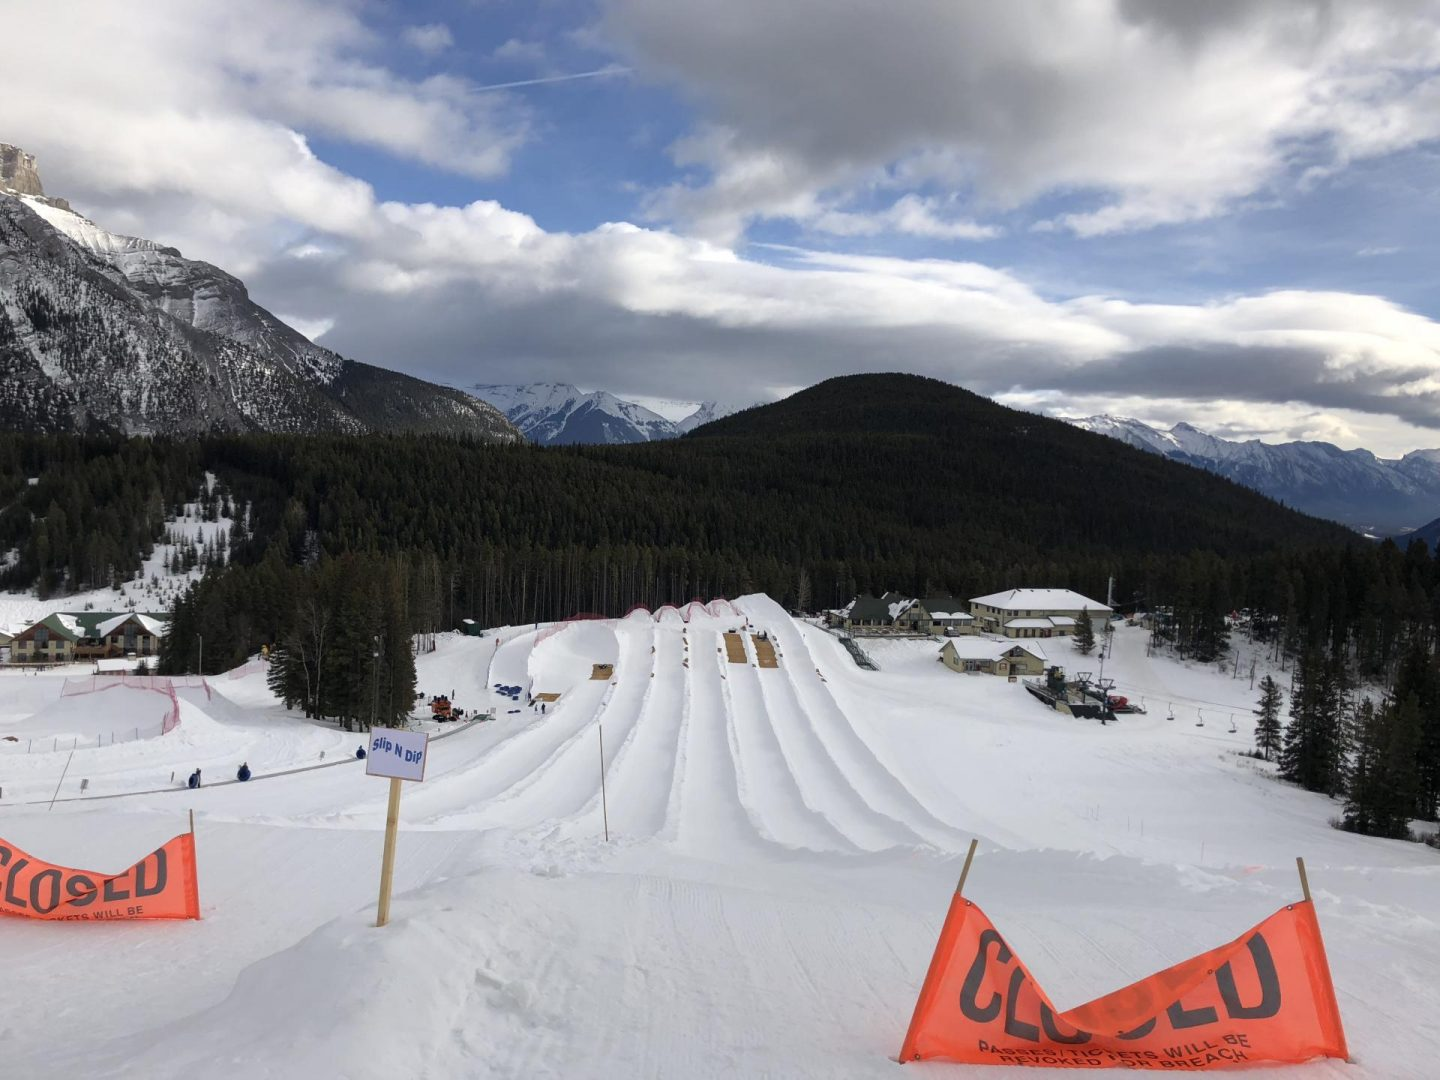 Downhill tubing thrill at Mount Norquay.